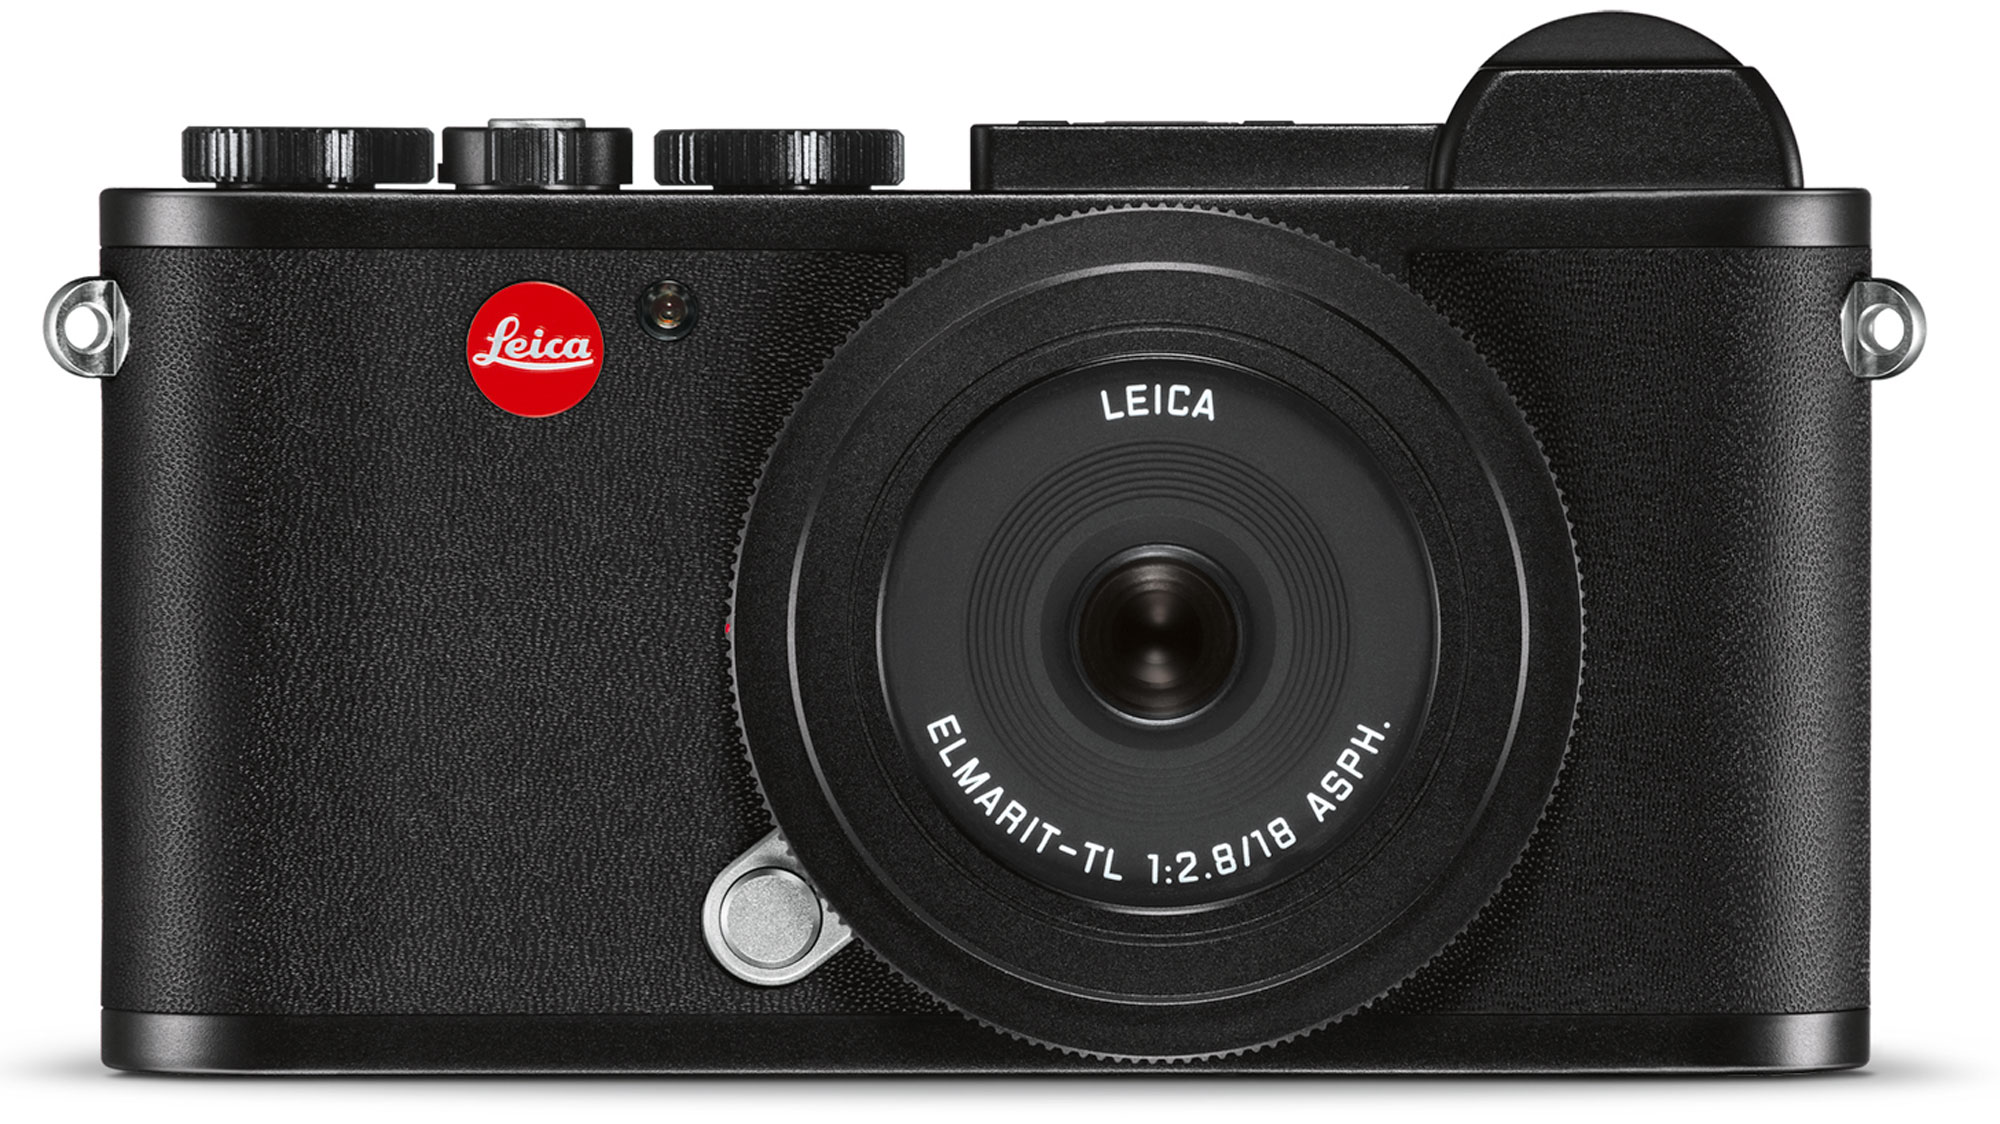 Leica CL mirrorless with built-in viewfinder